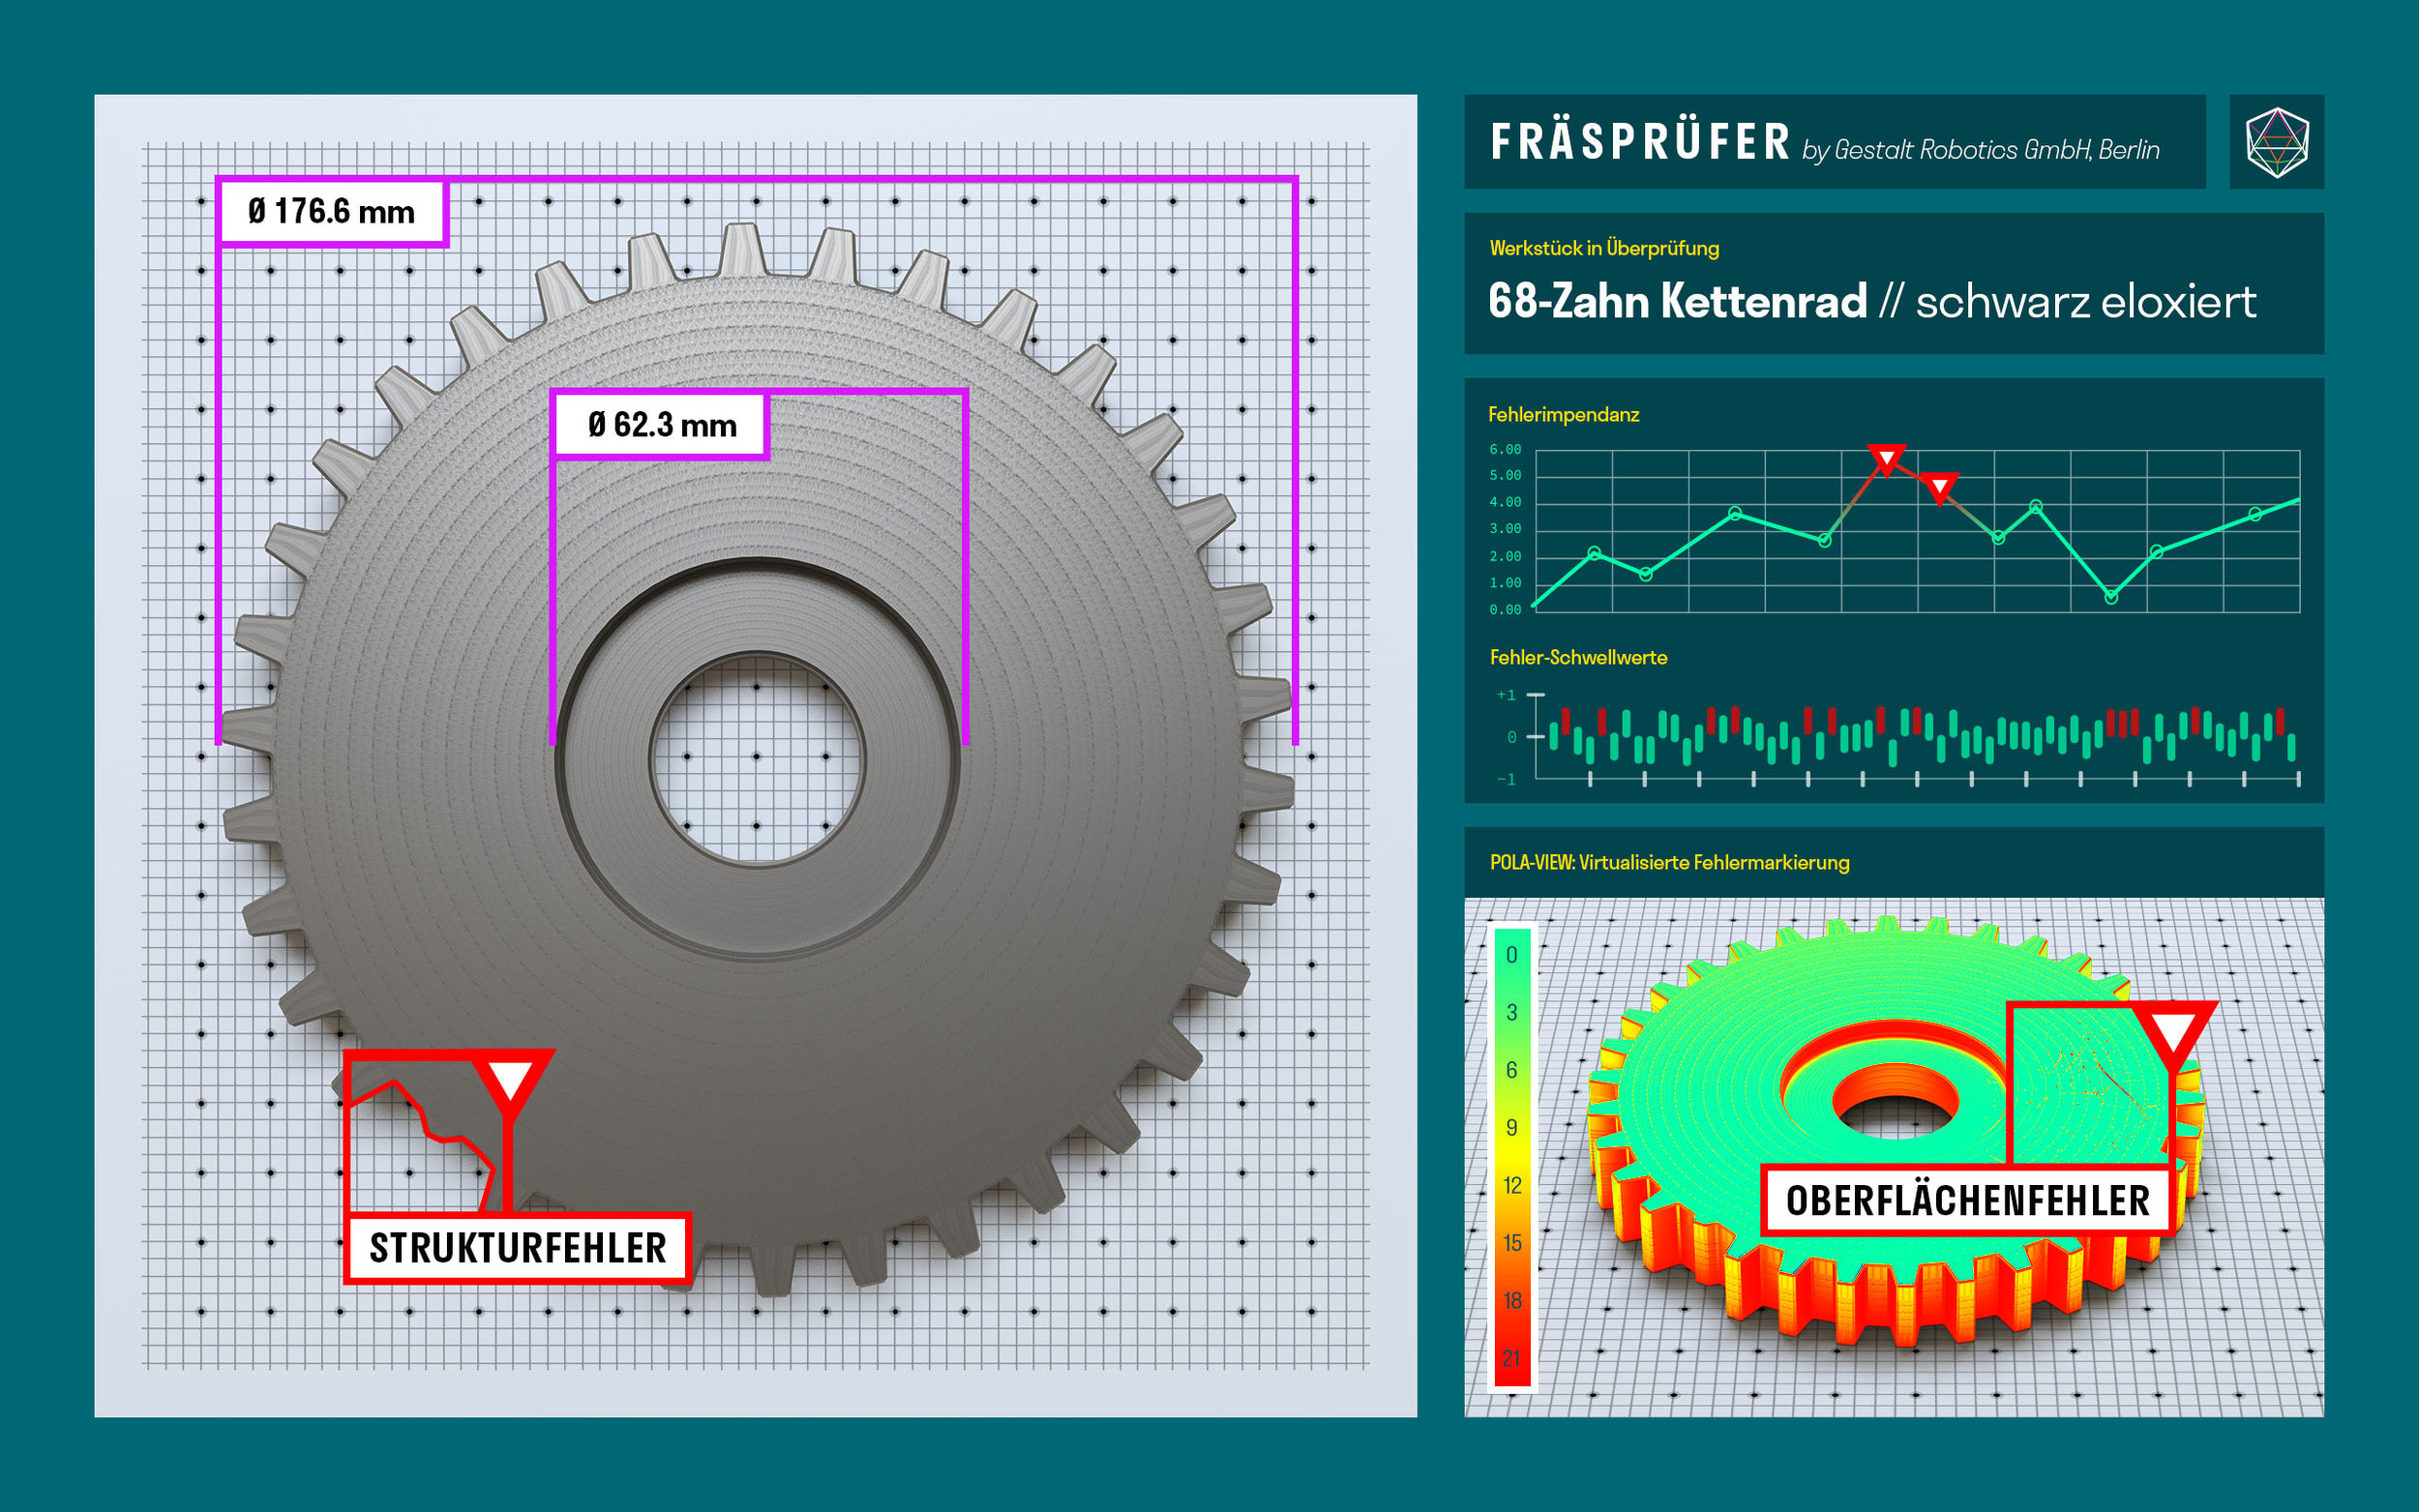 Quality inspection dashboard: g eometry measurement, damage detection and surface inspection via polarization camera